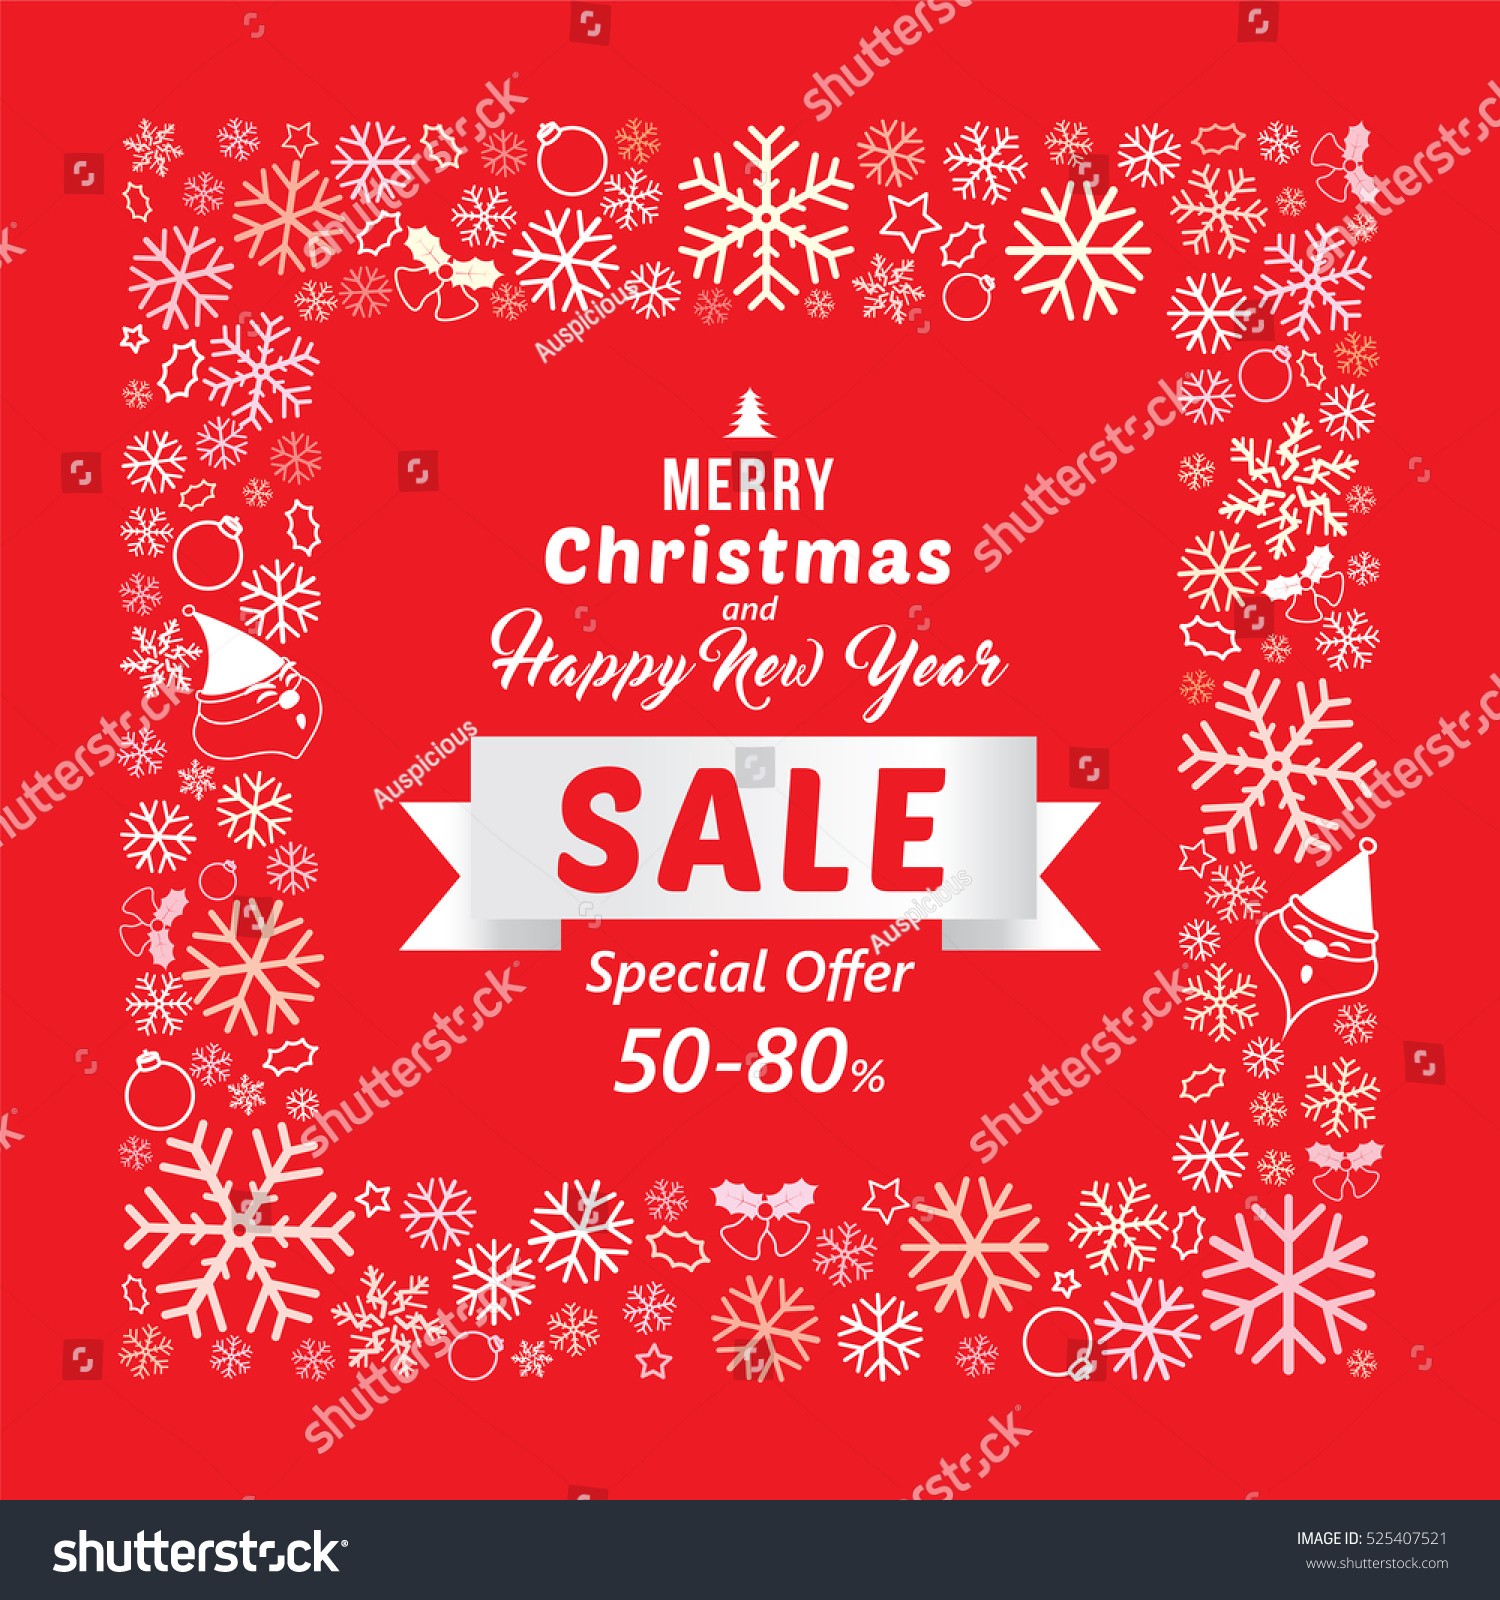 christmas and new year sale banner template design with discount 50 80